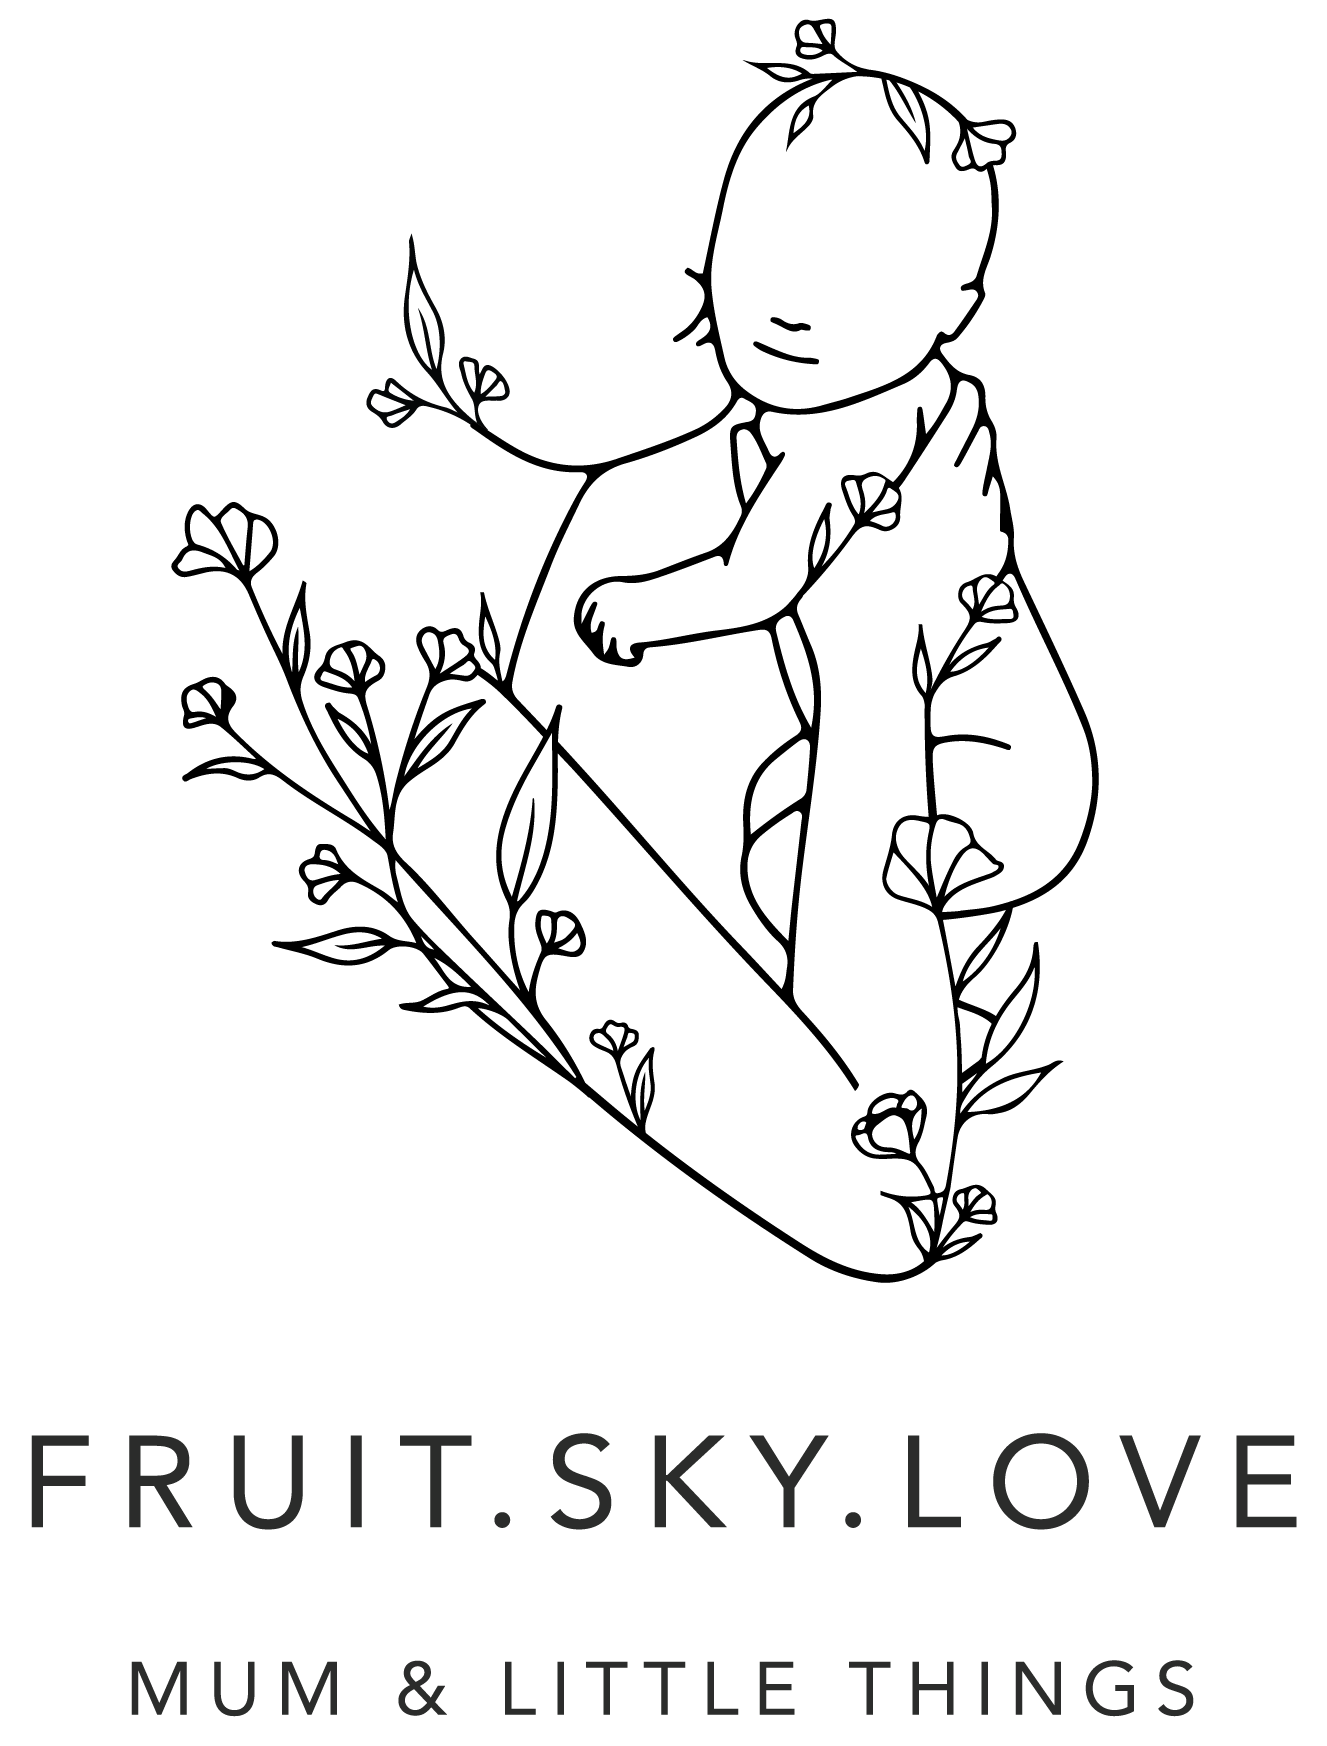 FRUIT.SKY.LOVE - MUM & LITTLE THINGS